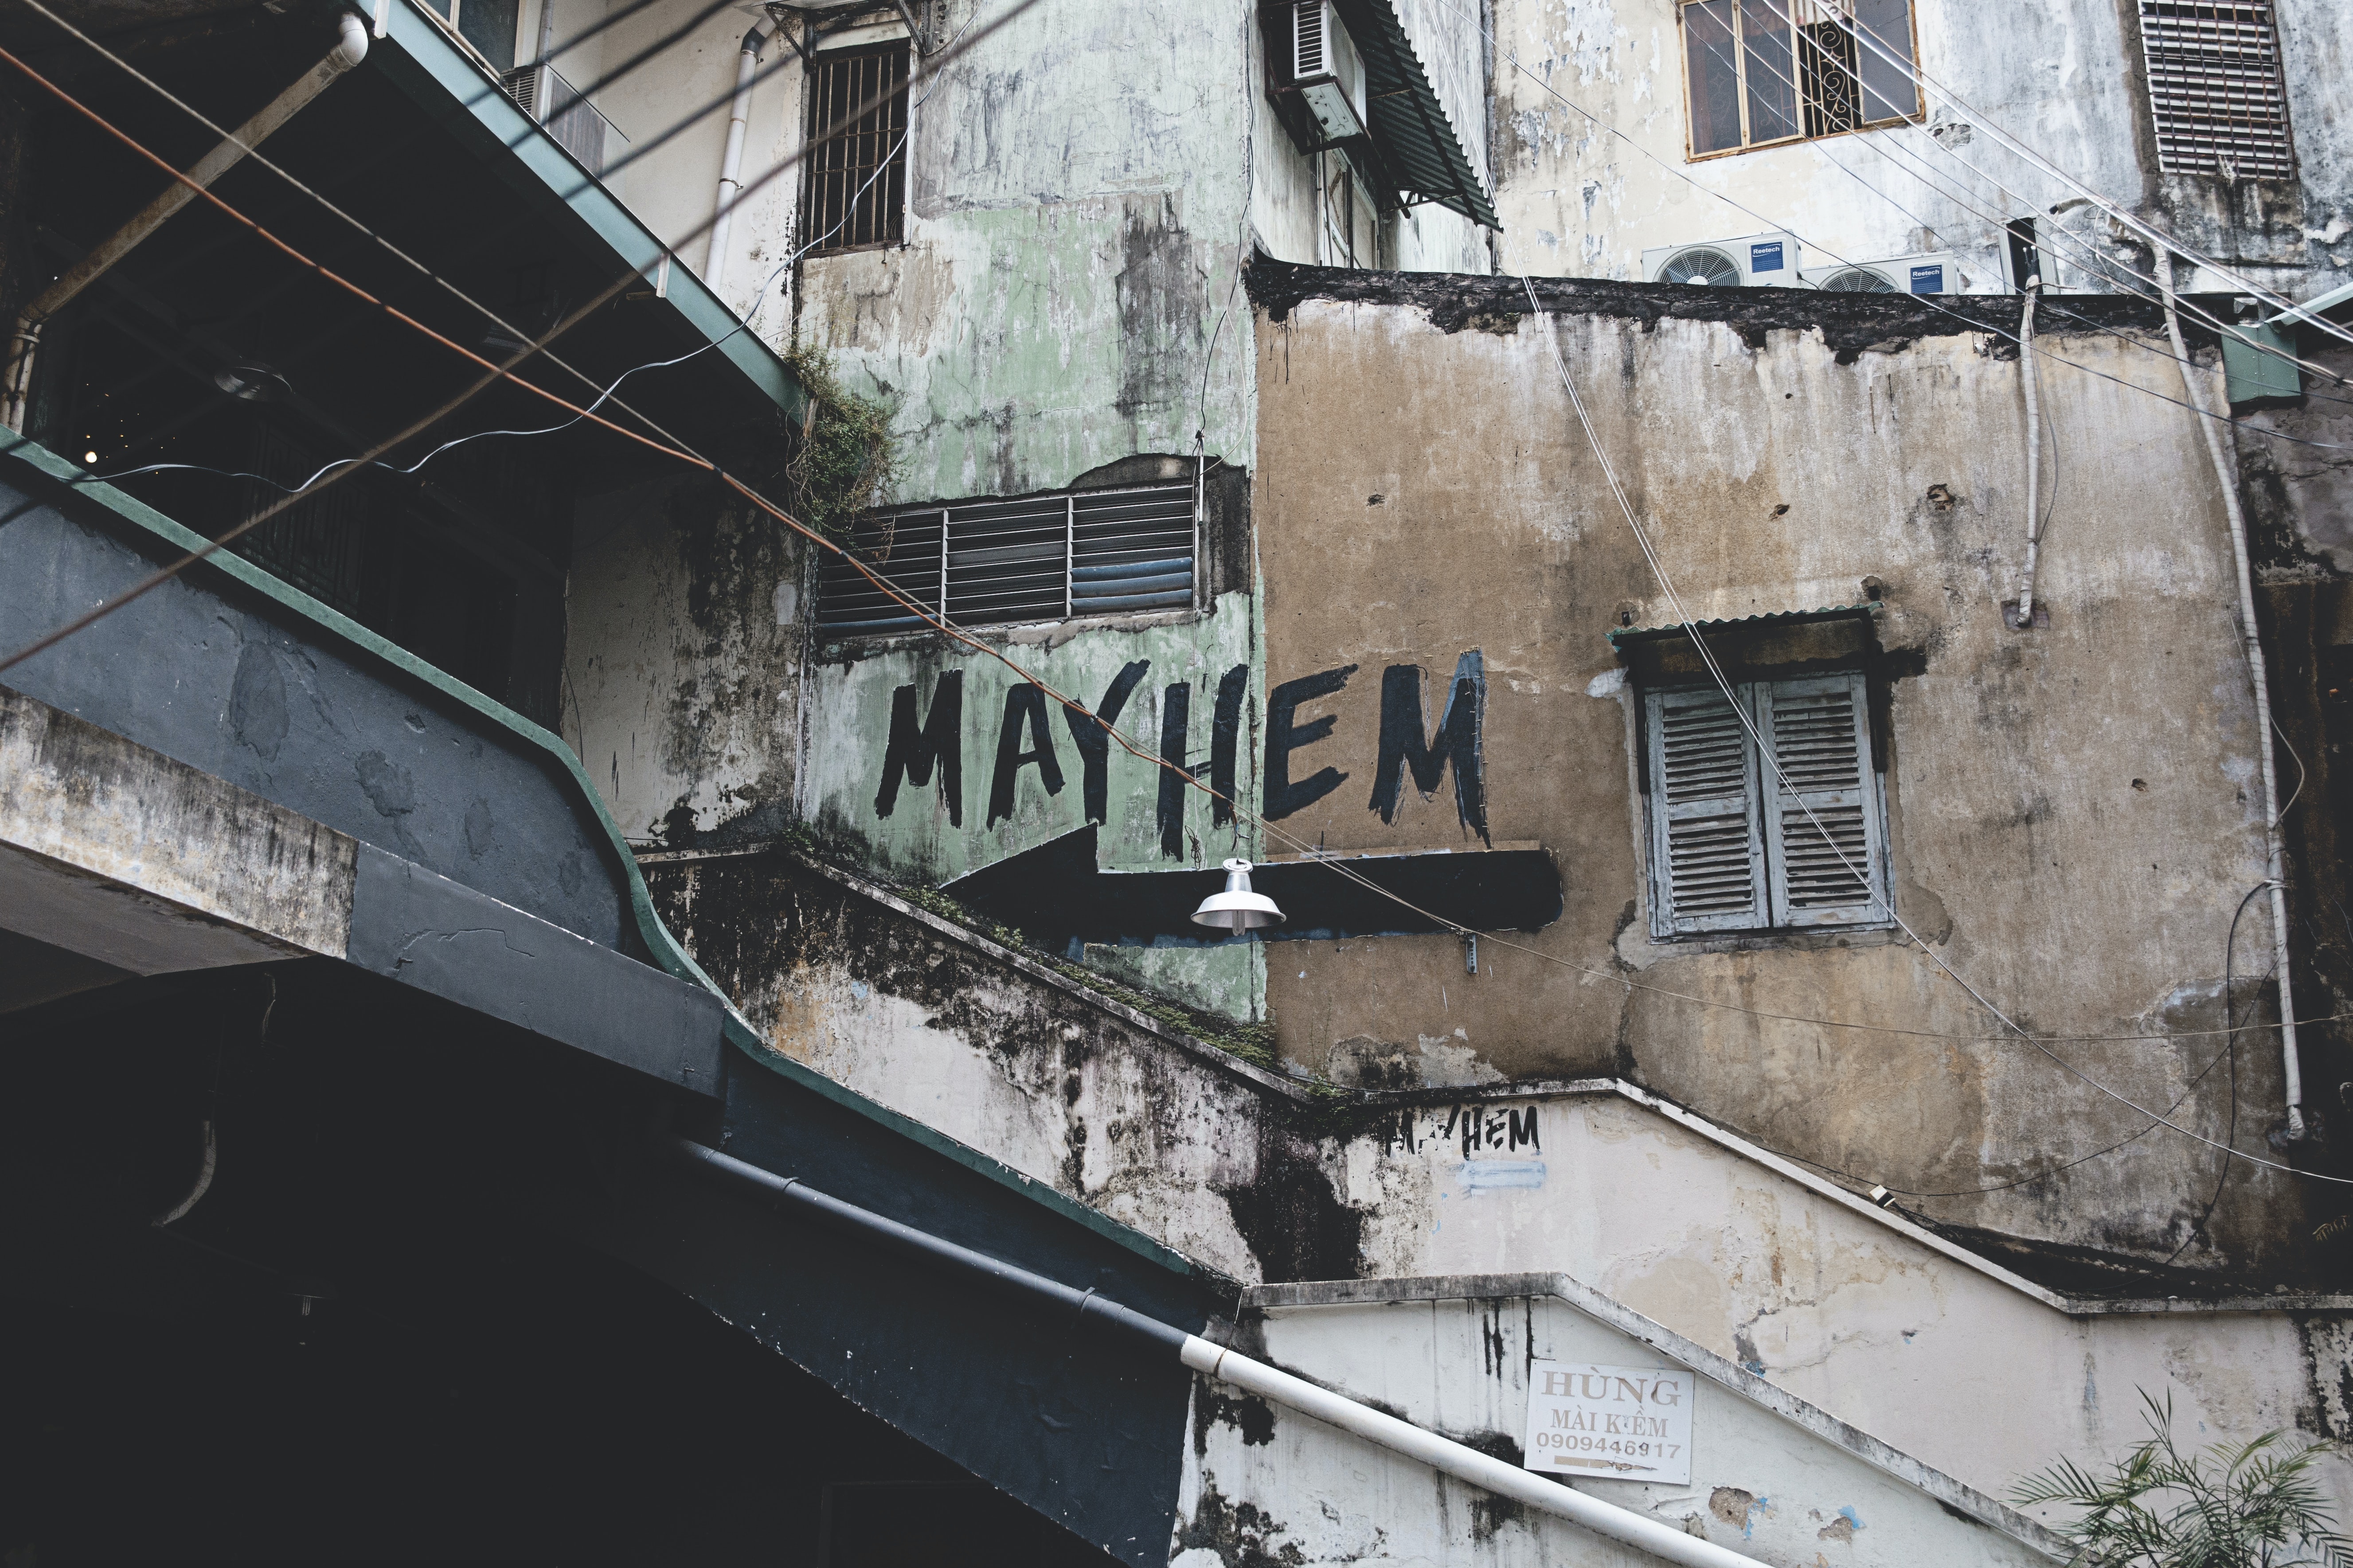 The exterior view of an urban building with an arrow and a mayhem text written on it in Ho Chi Minh City.